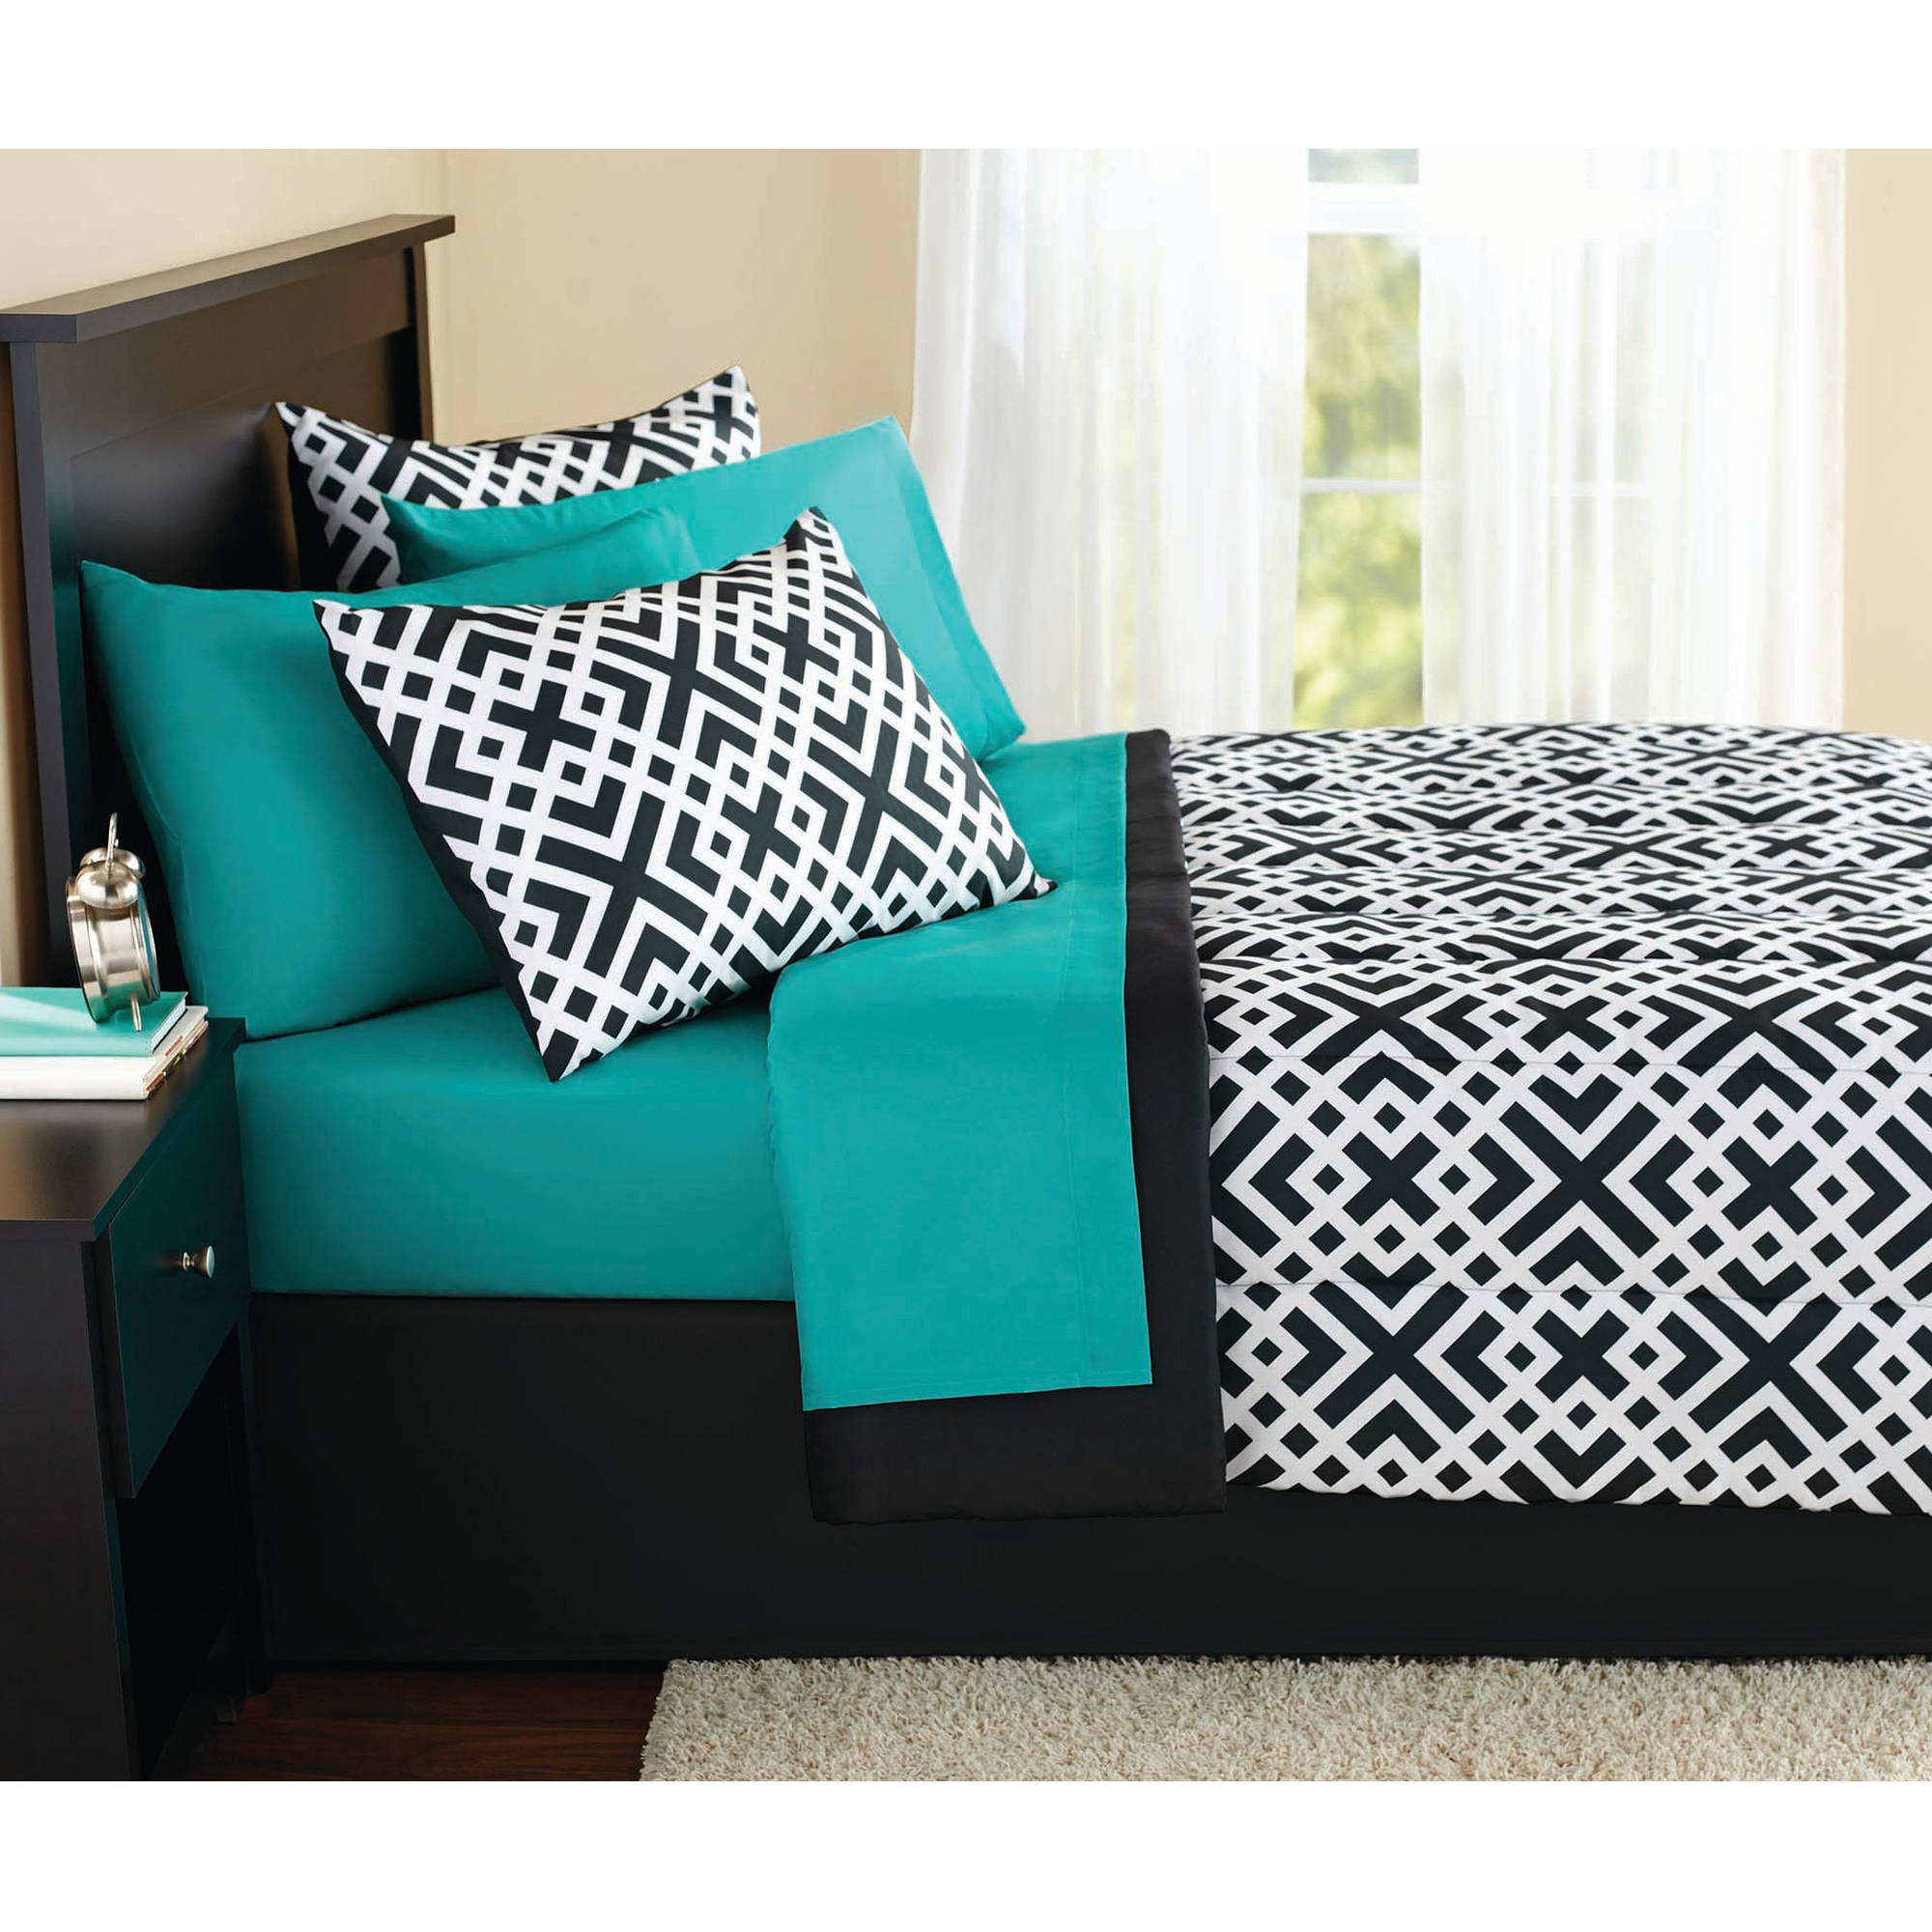 Mainstays Interlocking Geo Bed in a Bag Coordinating Bedding Set